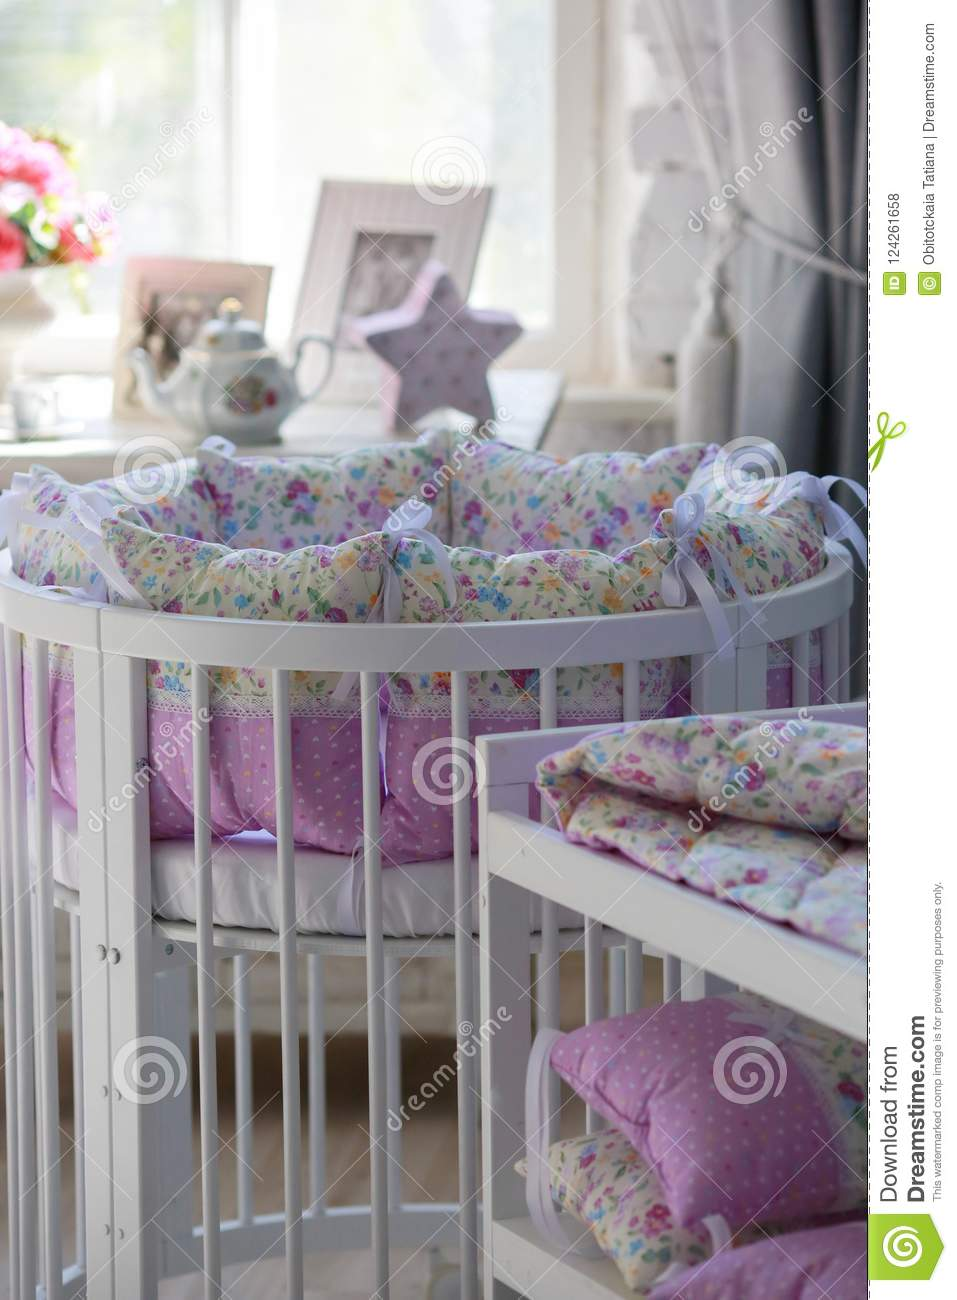 White Cribs for babies, round shape